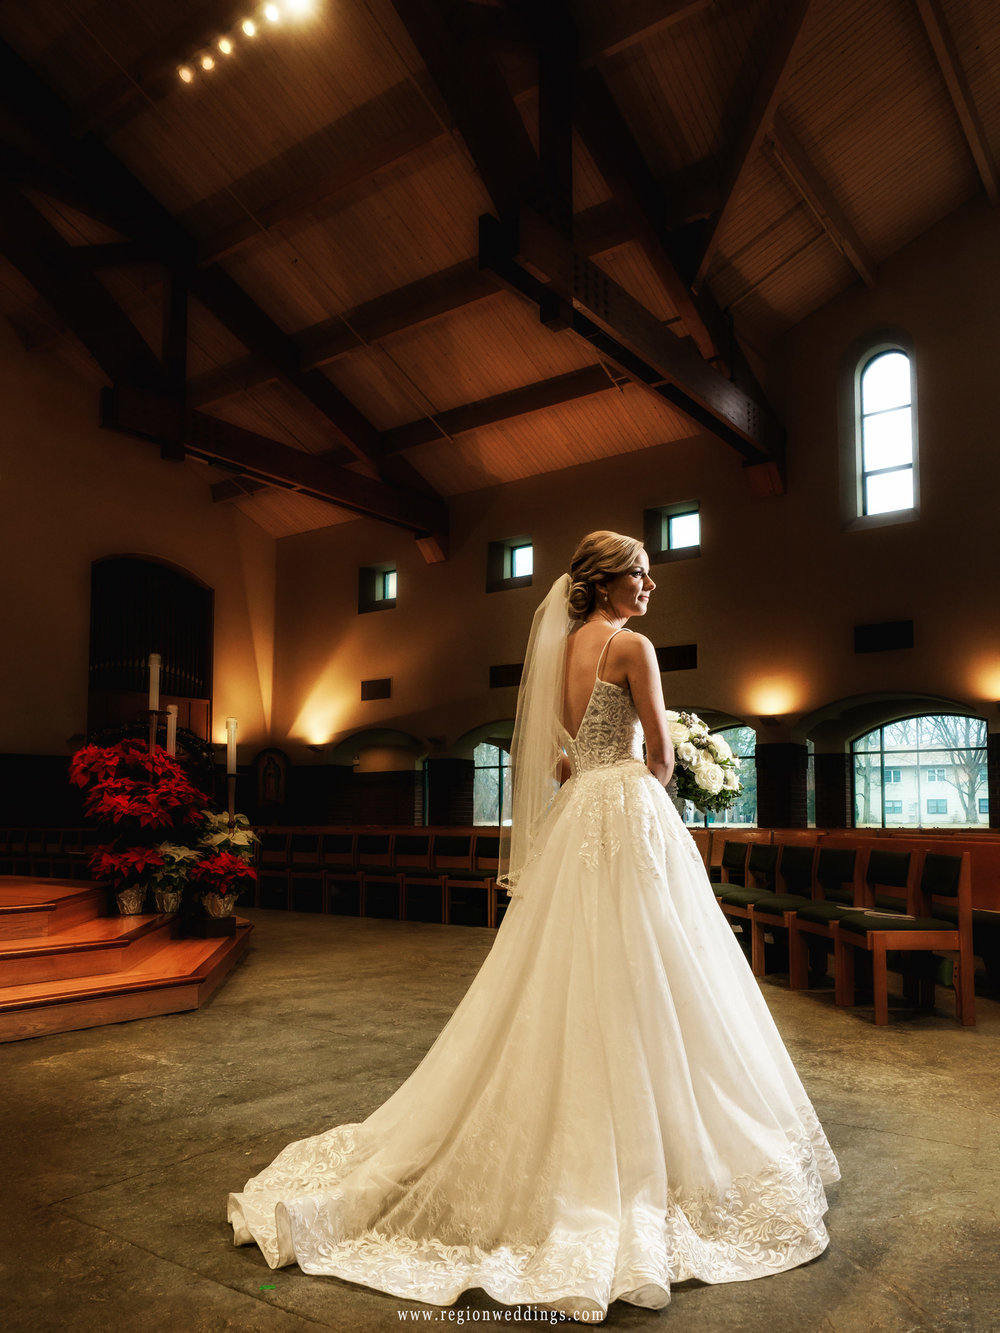 The bride shows off her pretty wedding dress at St. Michael's Parish.